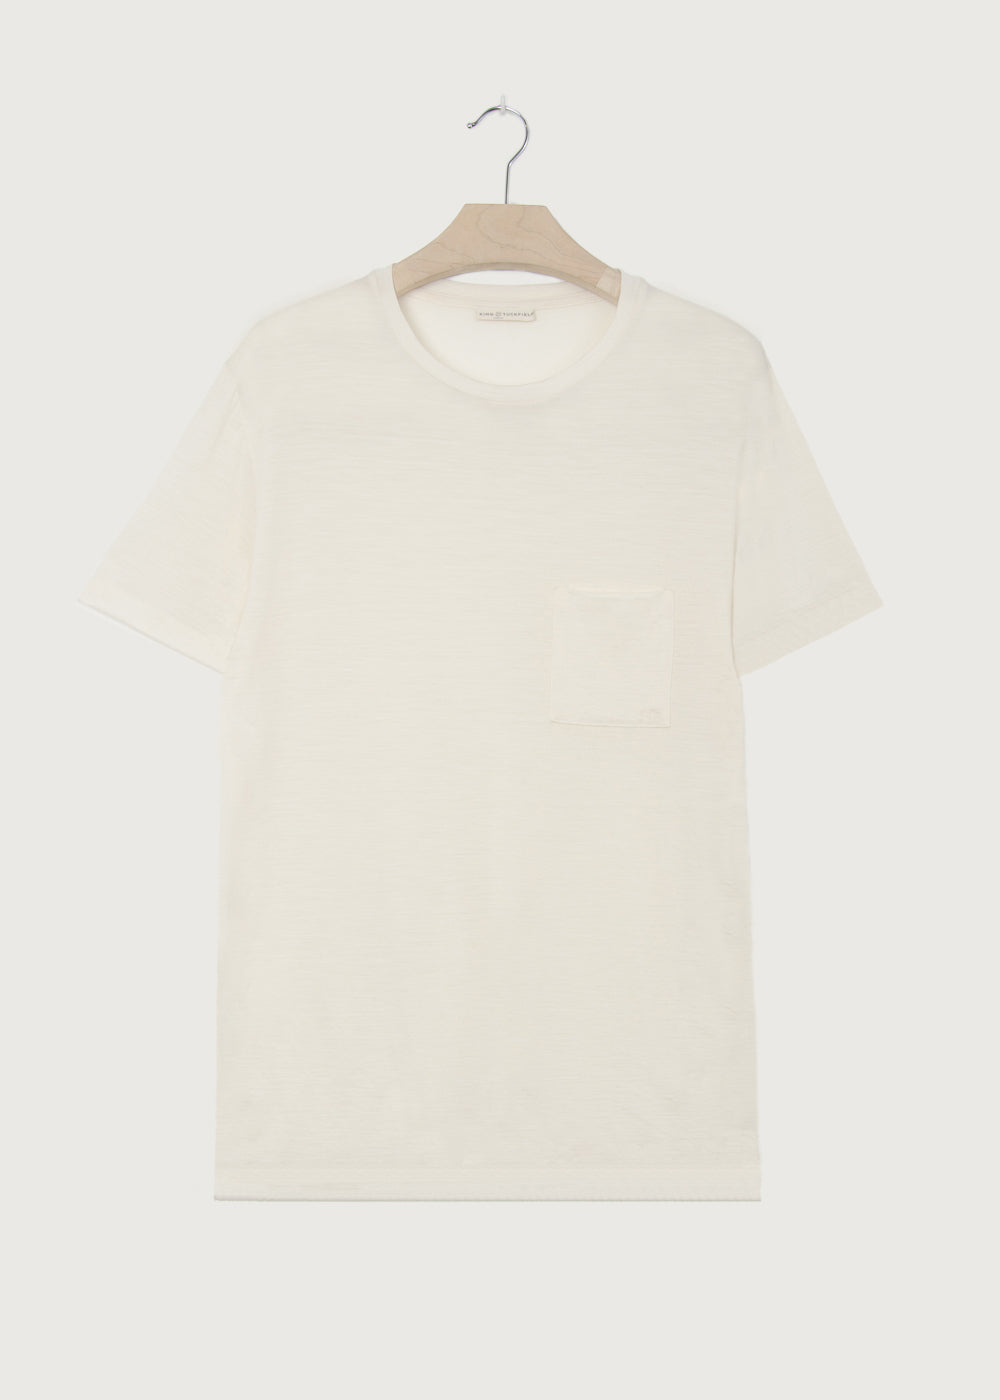 Merino Vanilla Pocket T-shirt - King & Tuckfield